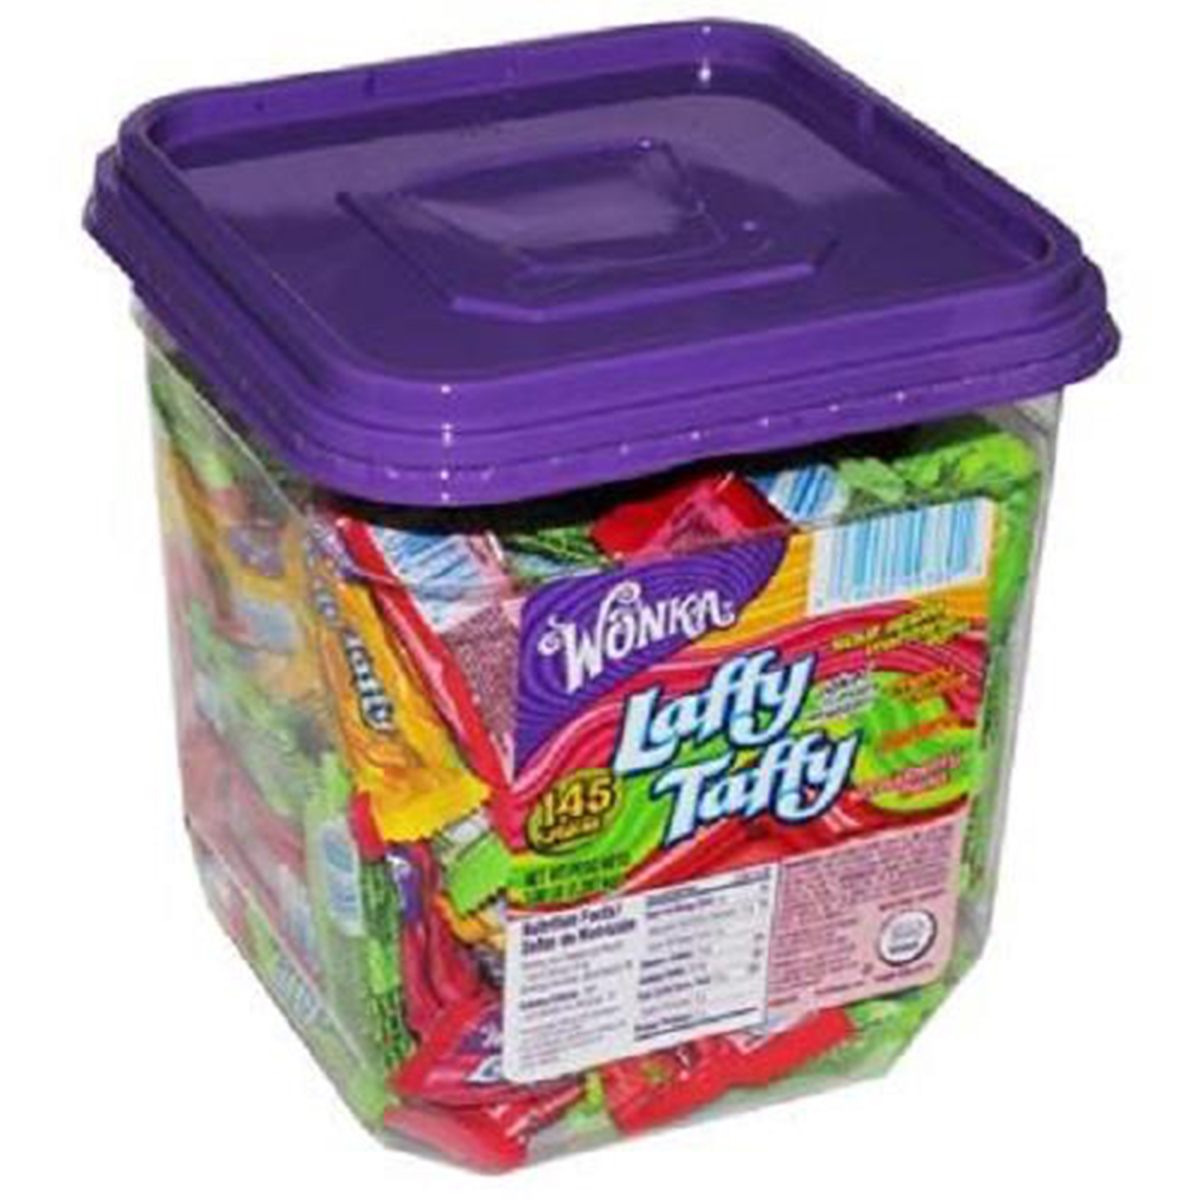 Product Of Laffy Taffy, Assorted - Tub, Count 145 (0.34 oz) - Sugar Candy / Grab Varieties & Flavors